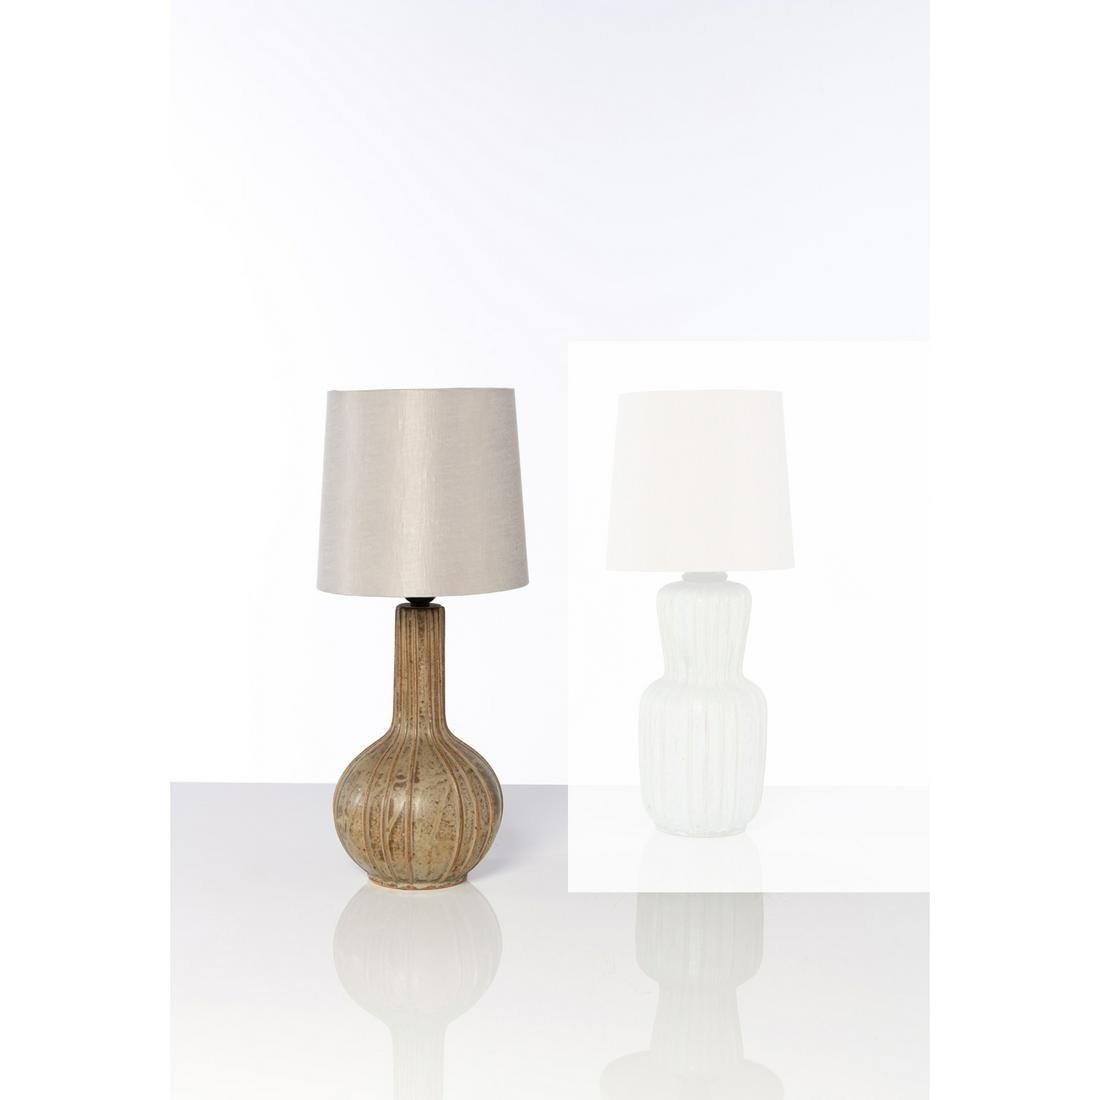 Arne Bang (1901-1983) Table lamp Ceramic Arne Bang